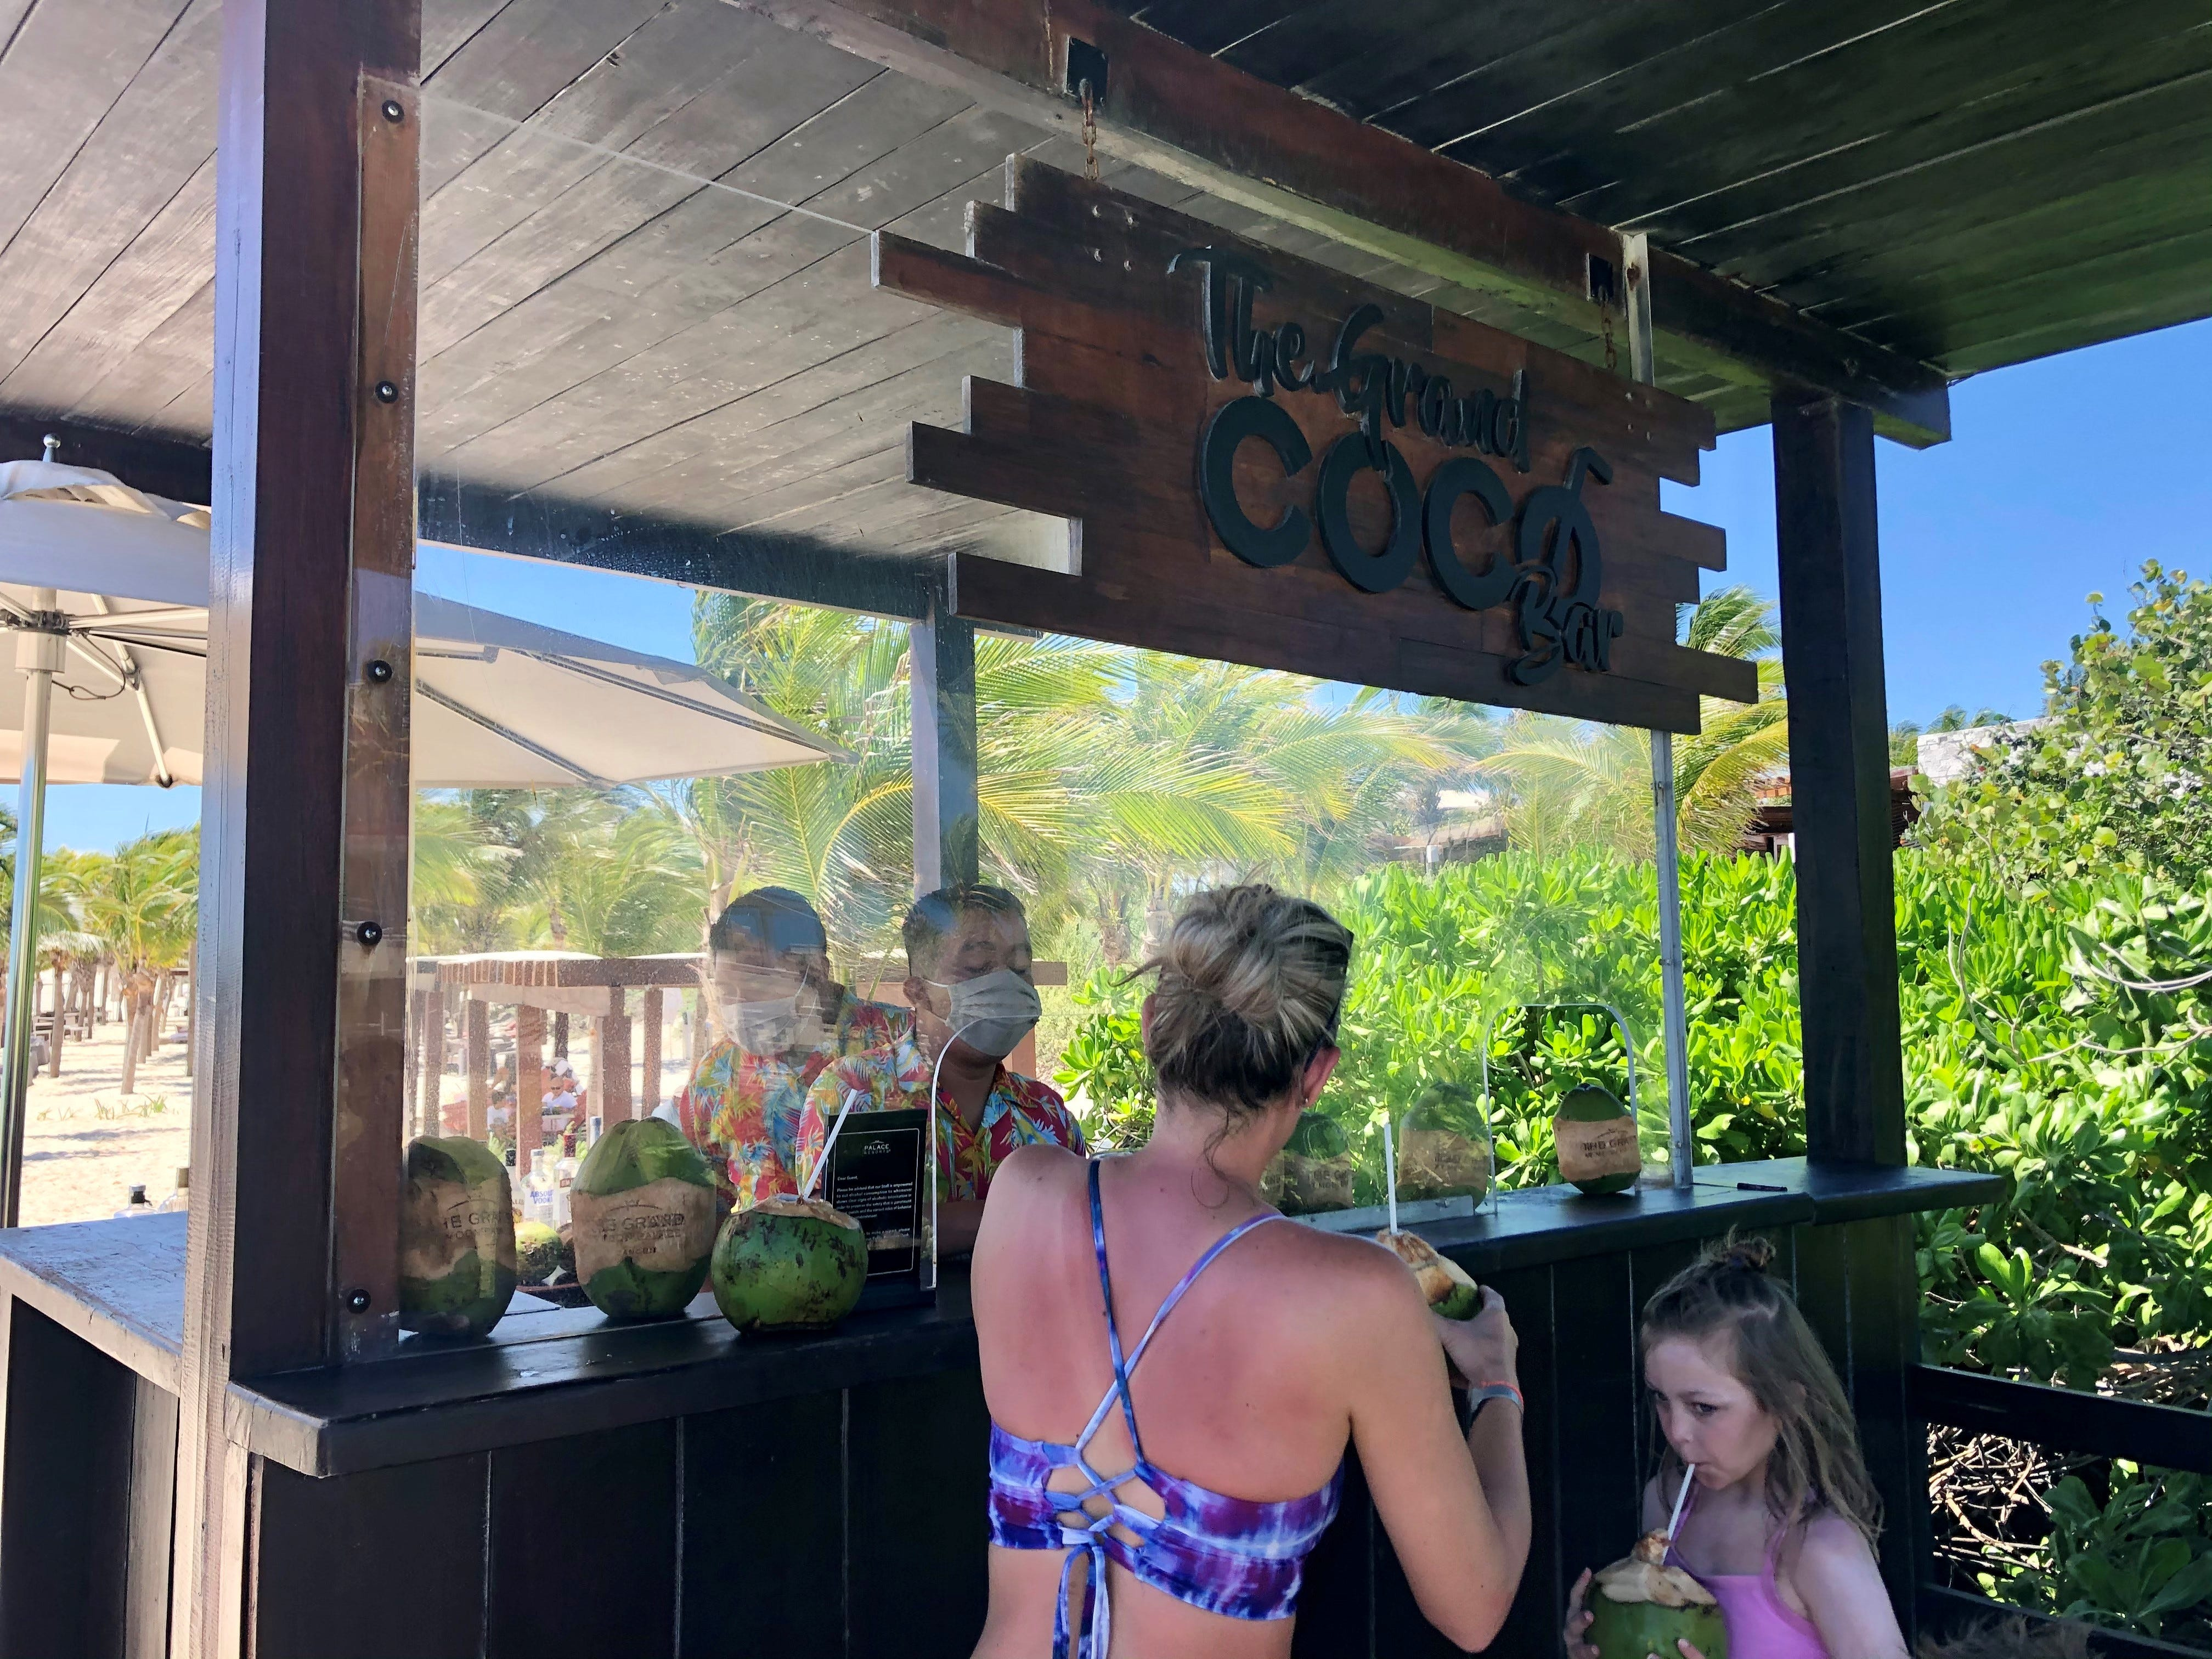 Guests at The Grand at Moon Palace, a luxury resort in Cancun, Mexico, are treated to complimentary drinks in souvenir coconuts.  The resort has been serving as many as 400 a day, back to pre-pandemic levels.